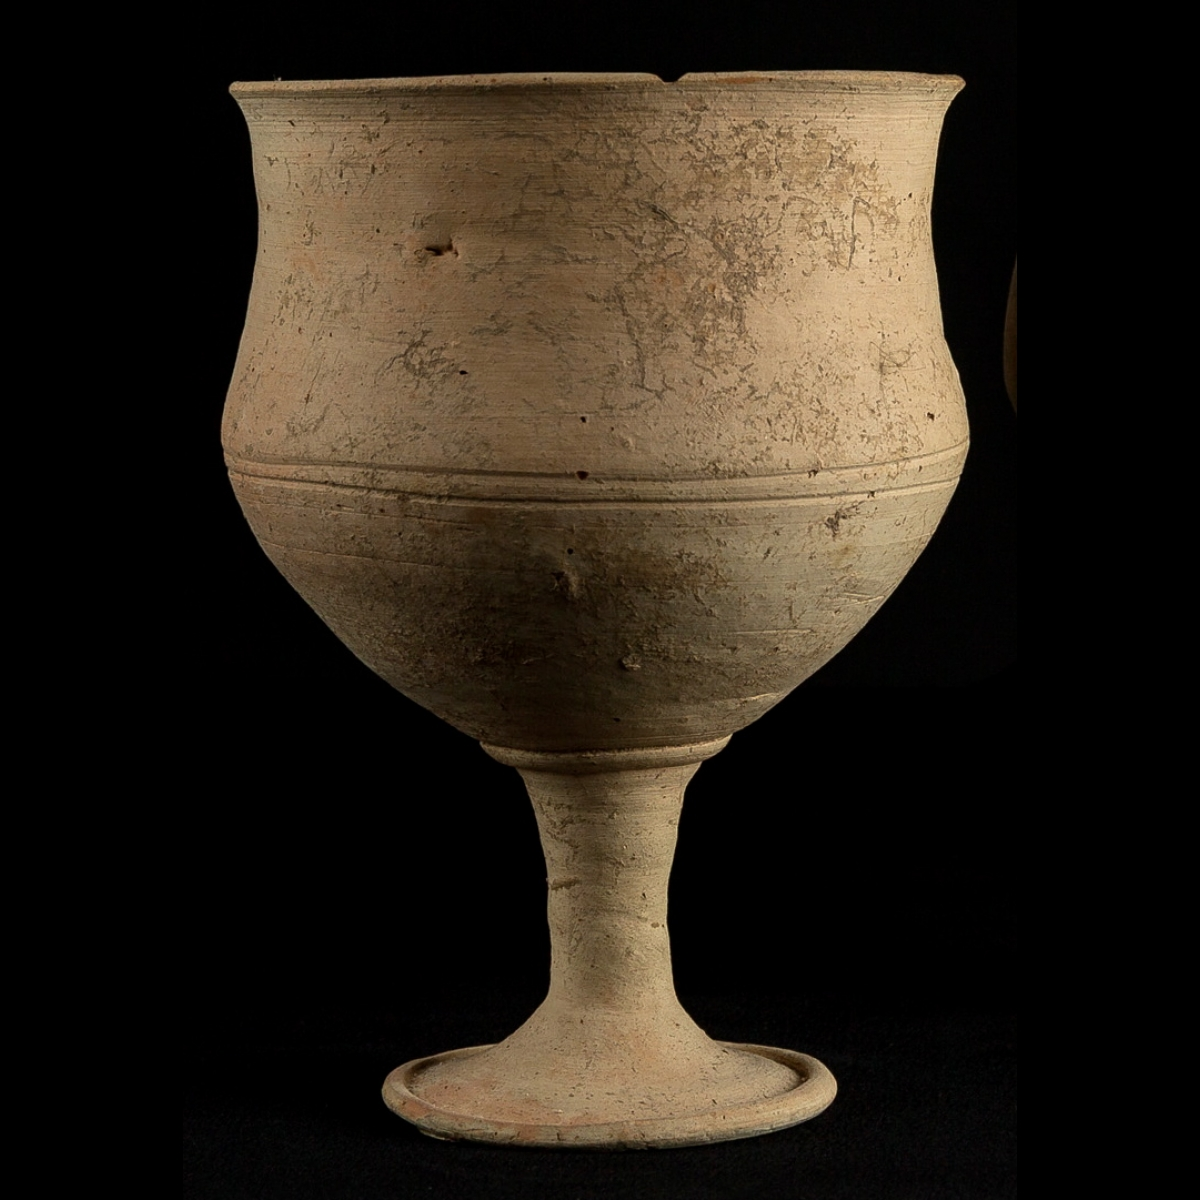 Photo of chalice-bactria-galerie-golconda-antiquities-saint-paul-de-vence